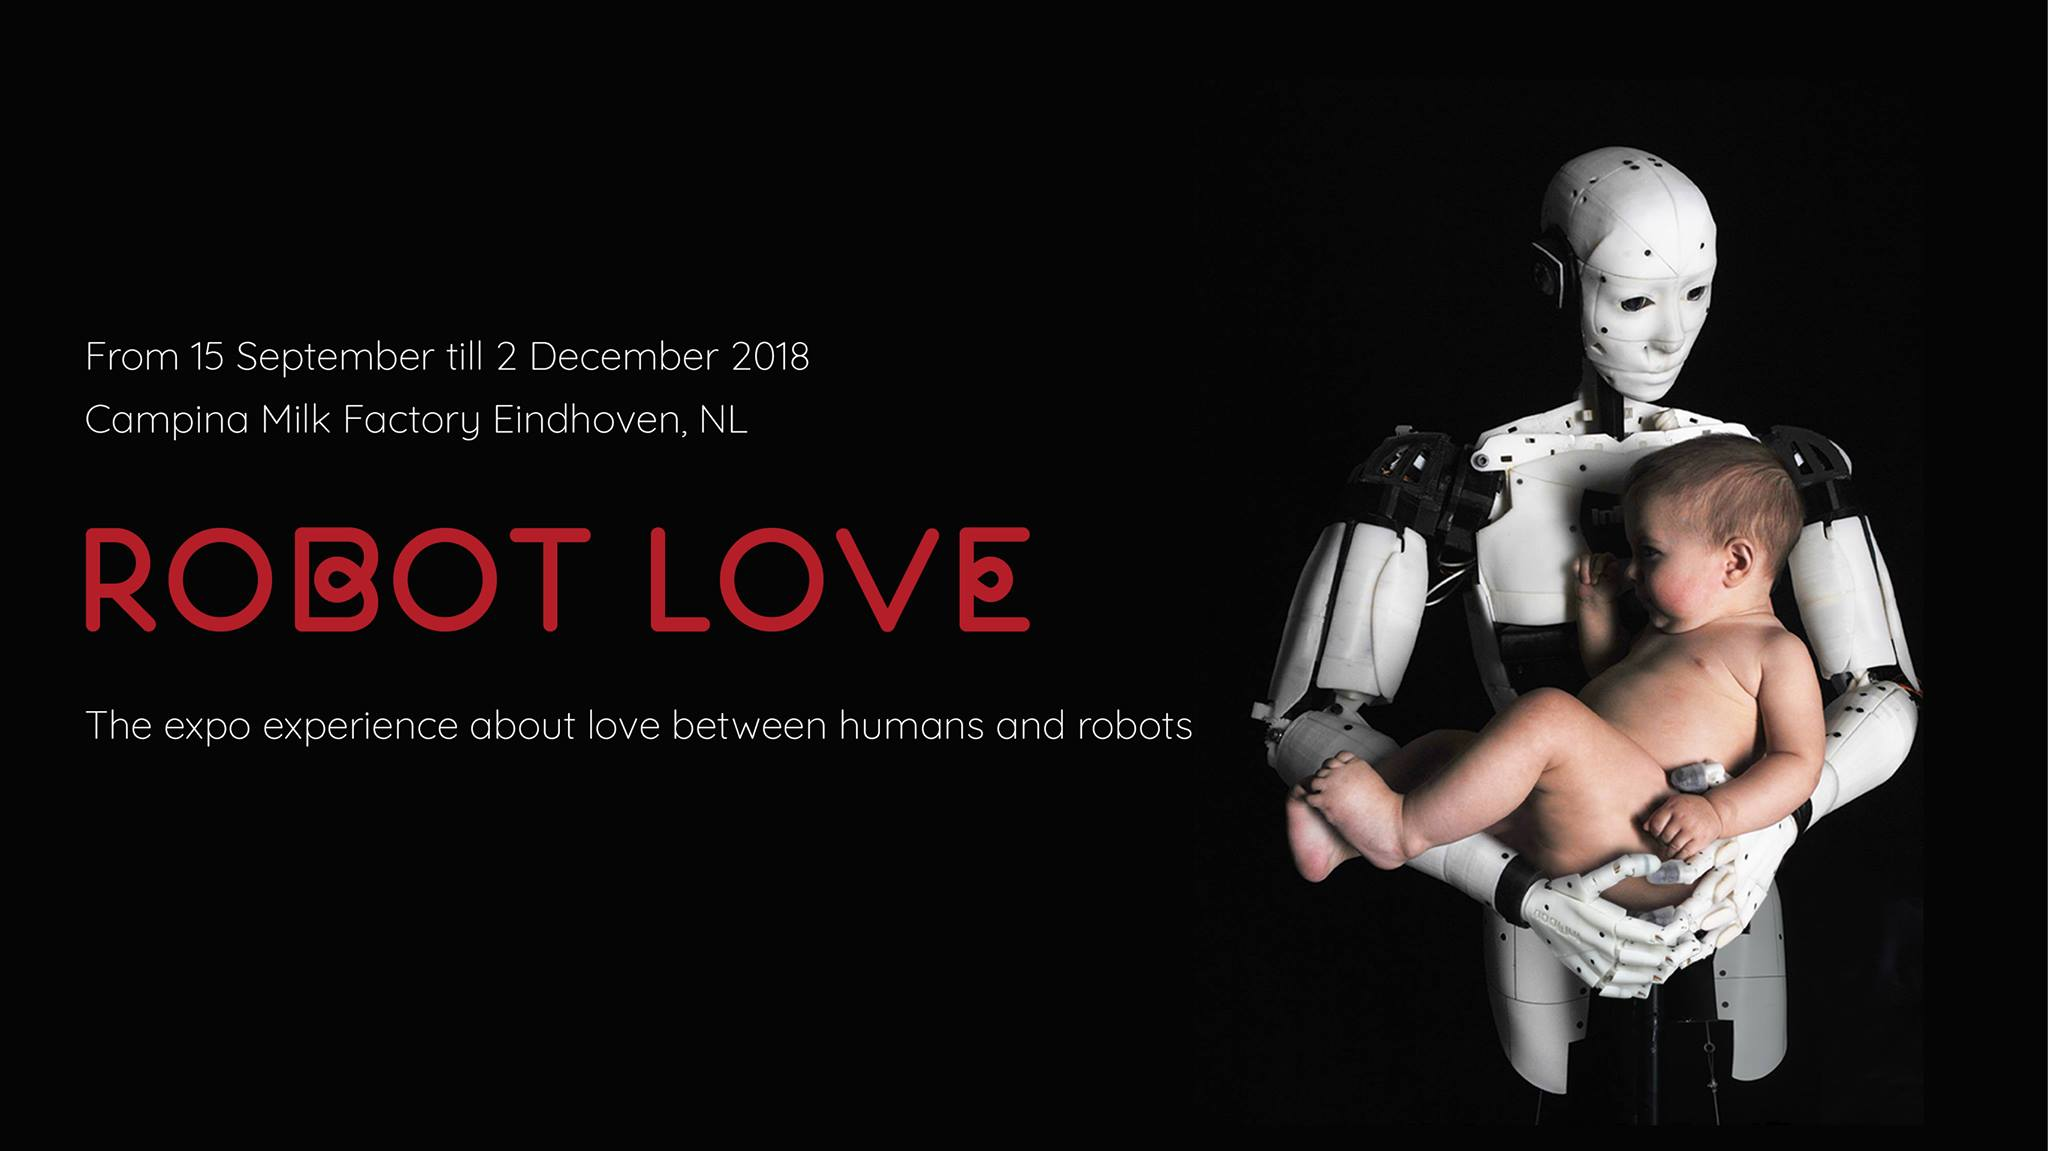 Can we learn from robots about love? Robot Love 2018, robotic, artificial intelligence and neuroscience in the heart of Eindhoven, Netherlands